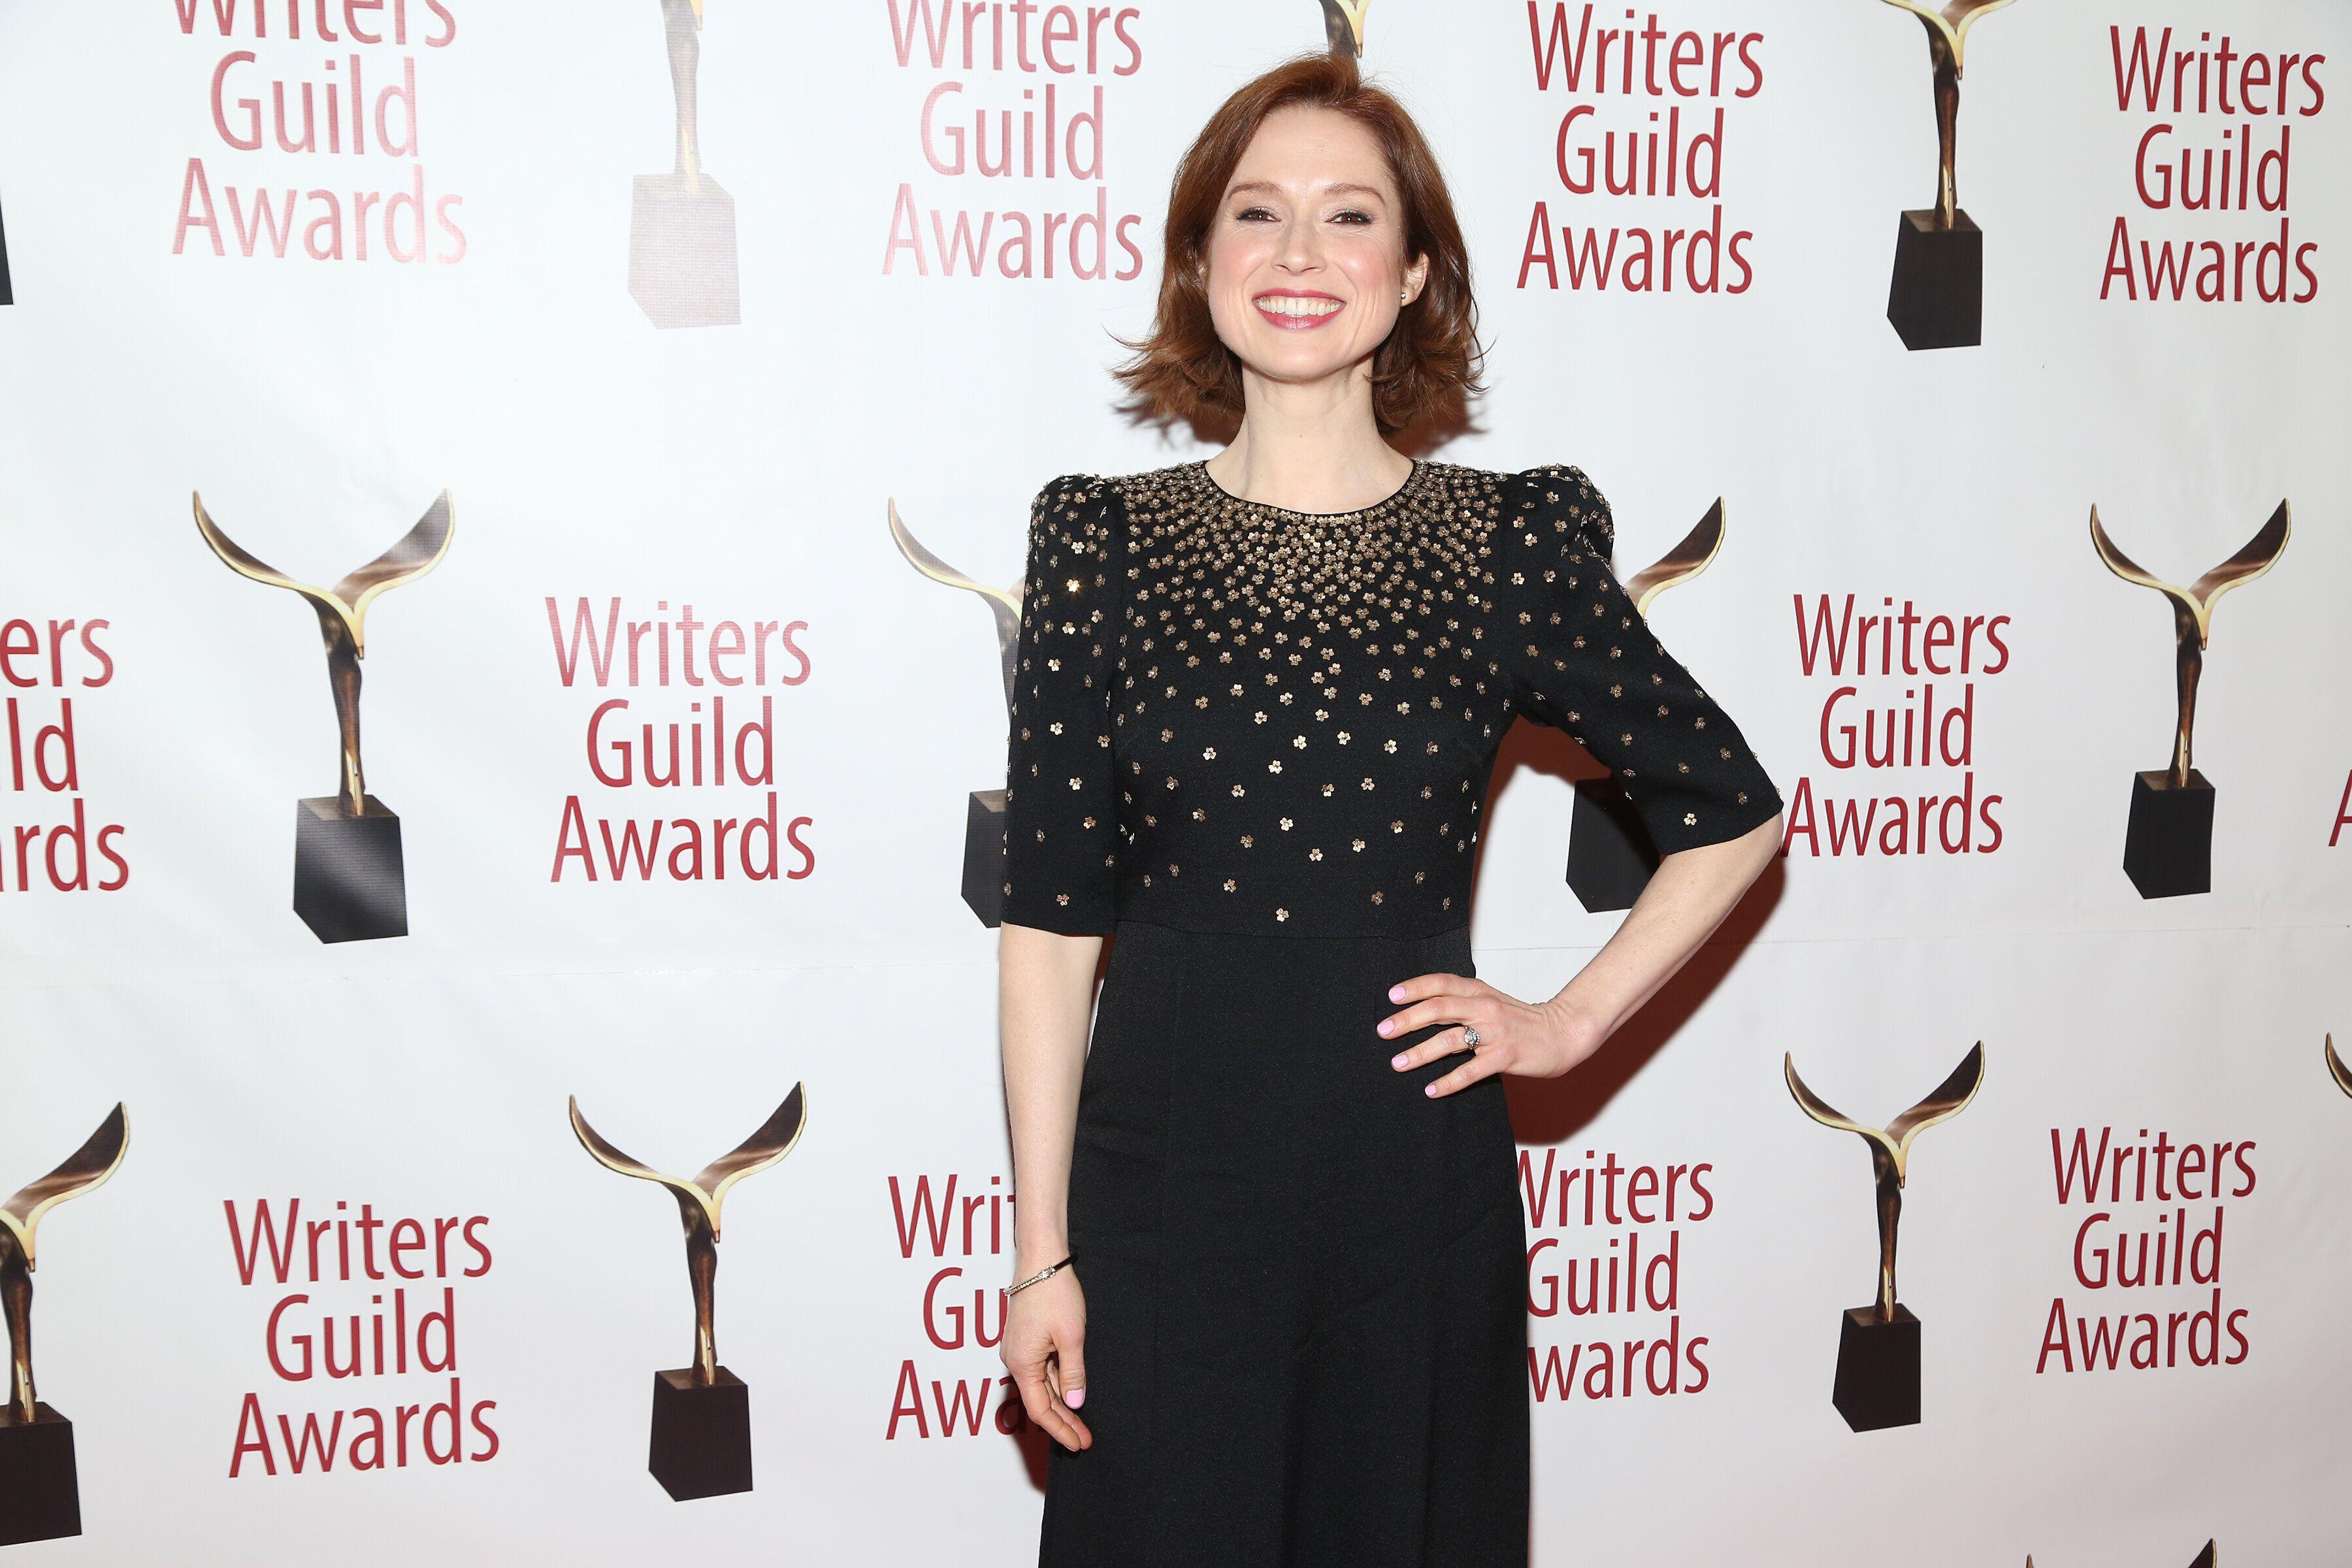 Actress Ellie Kemper once wrote a jingle for McDonald's